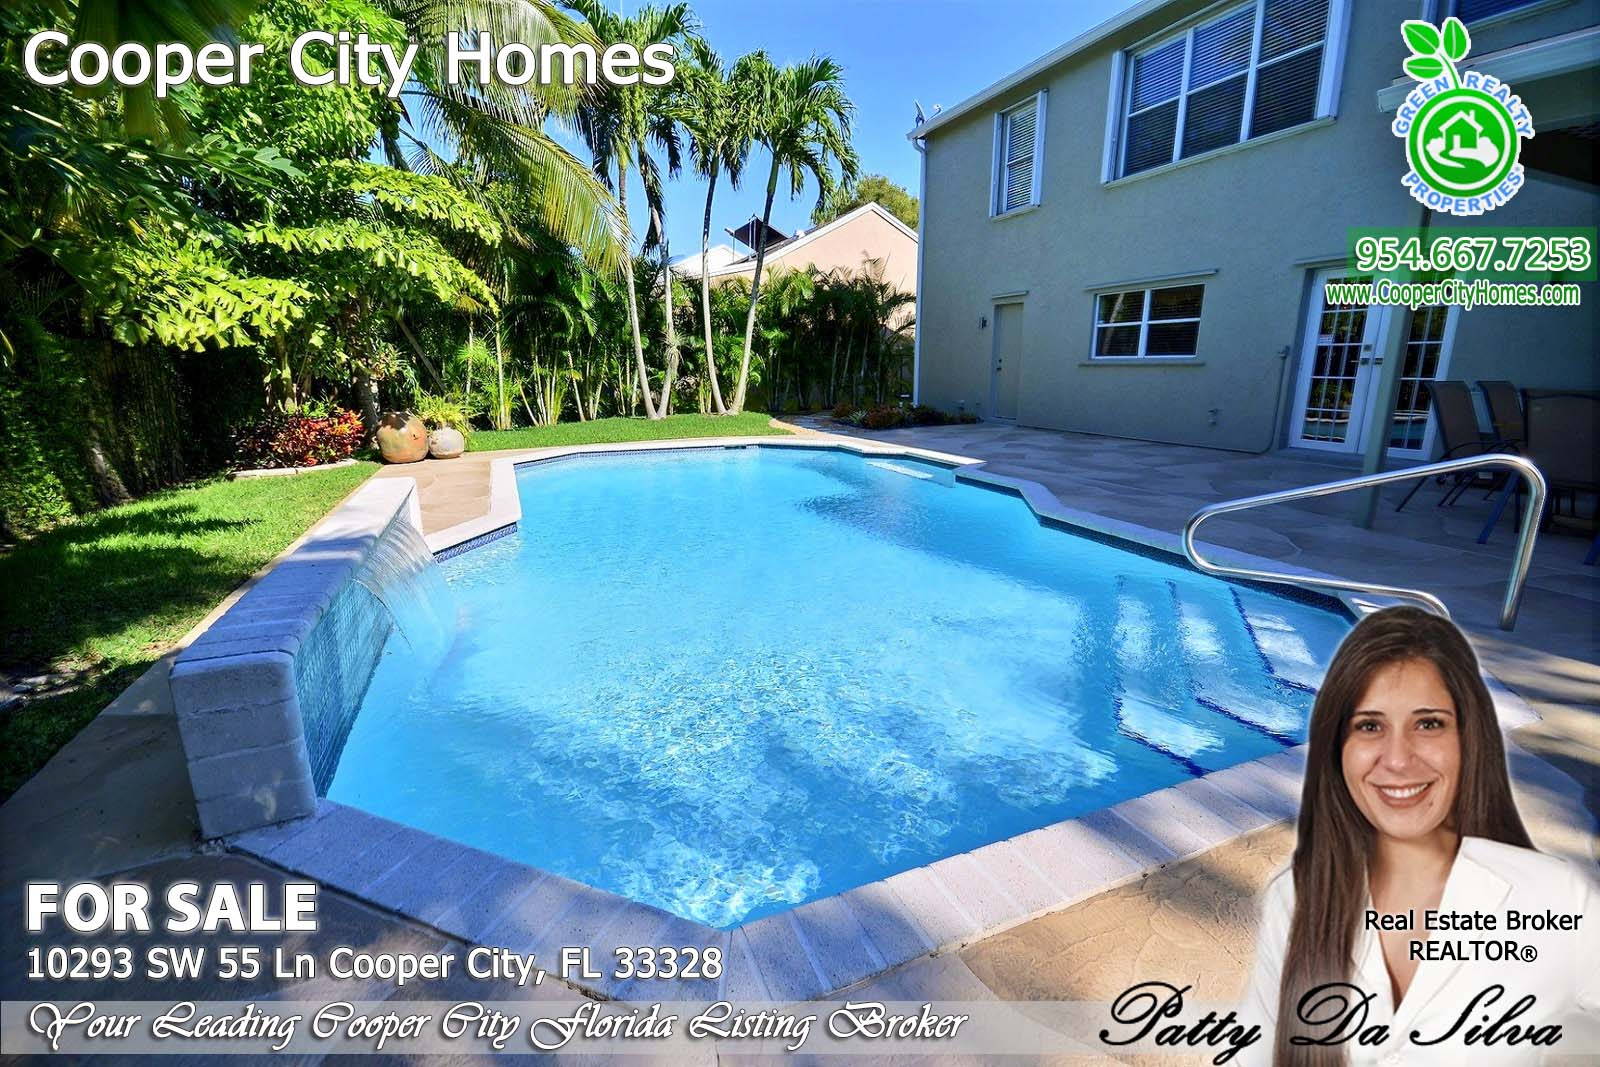 Cooper City Real Estate Broker Patty Da Silva Green Realty Properties (8)